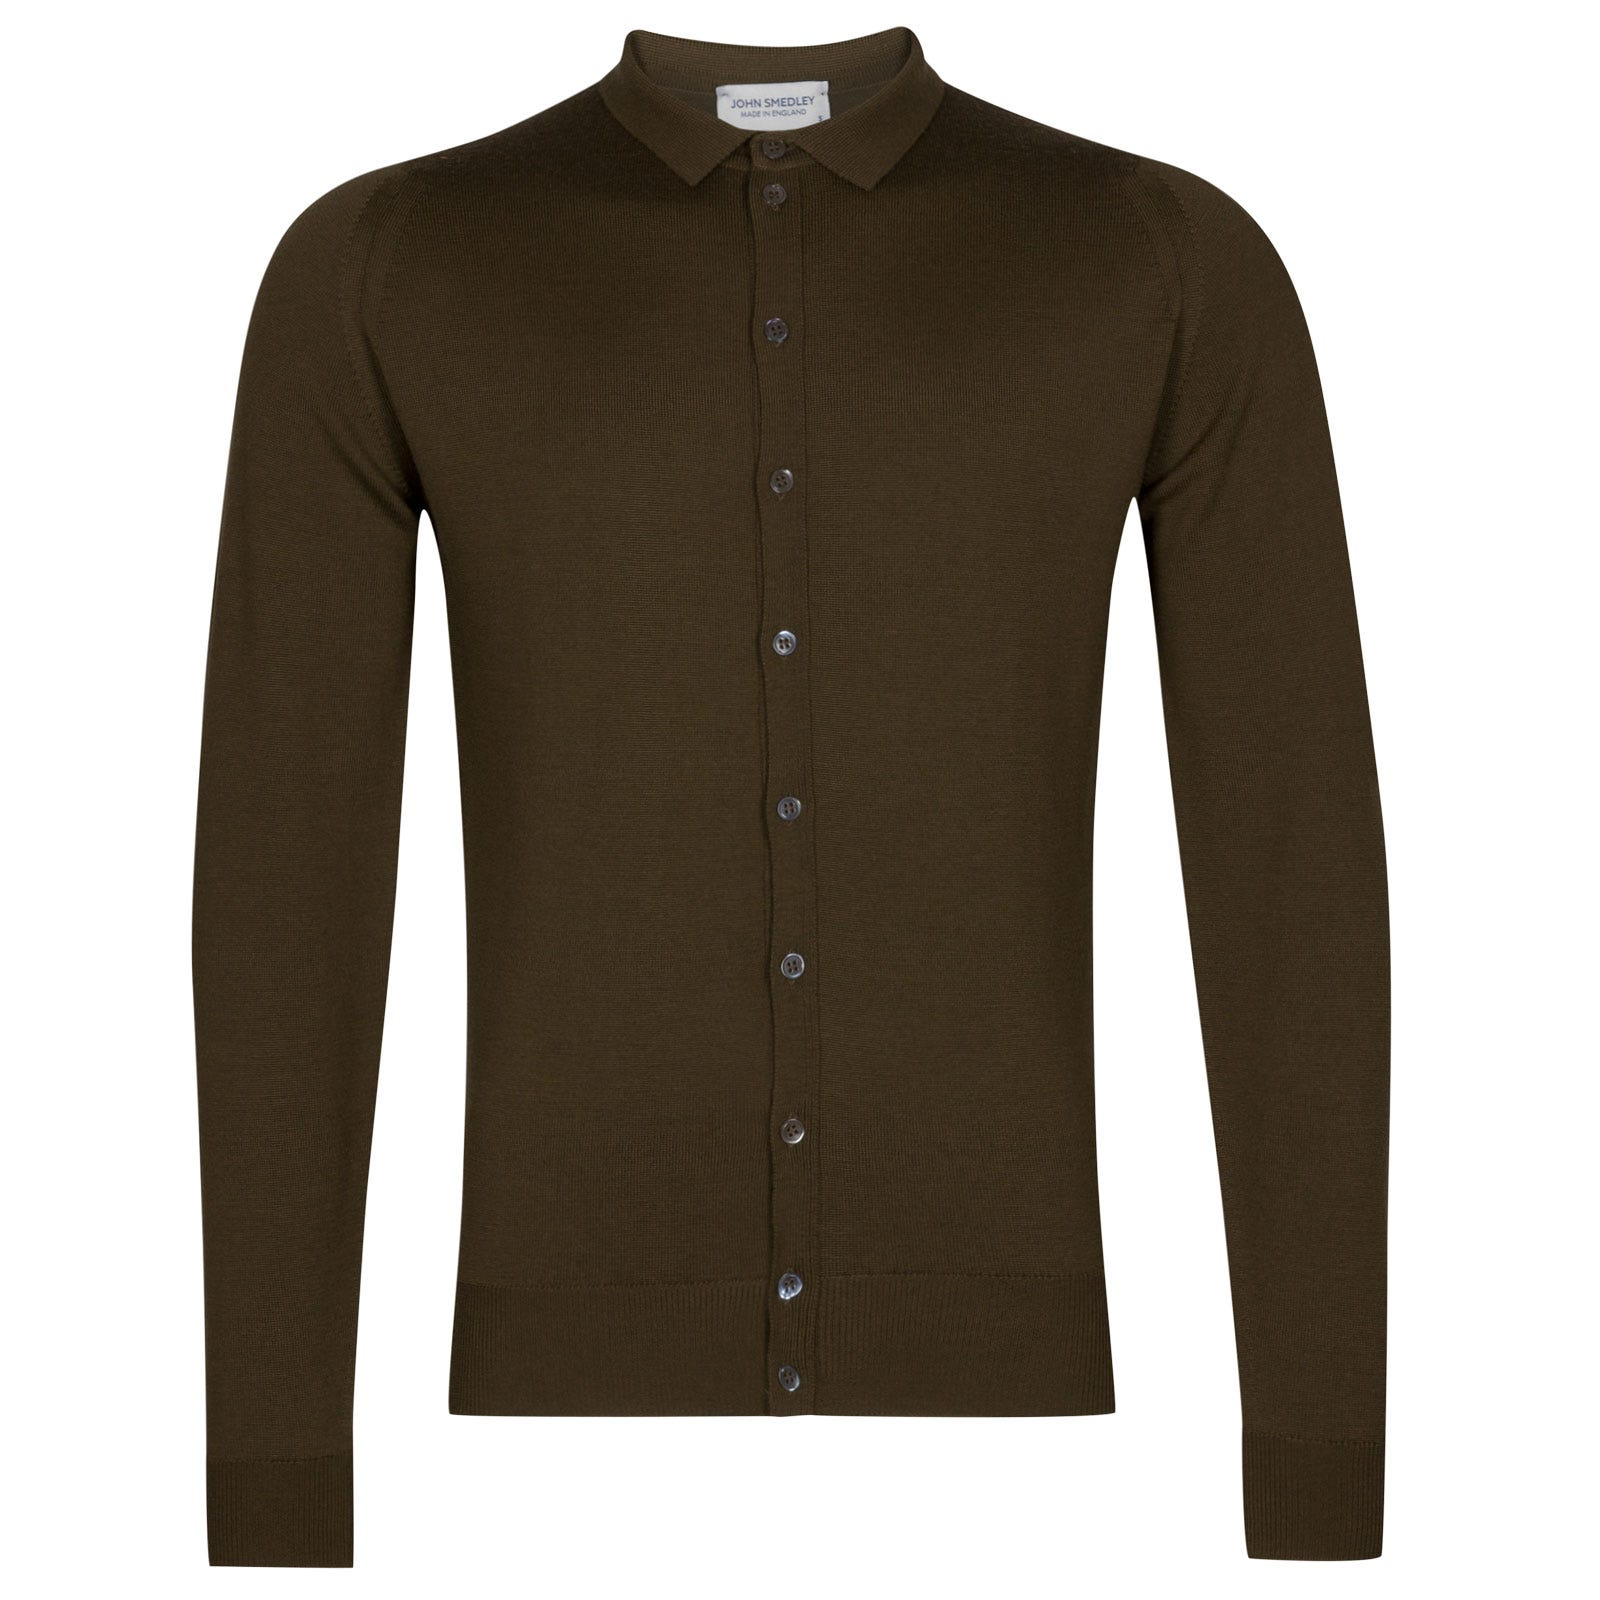 John Smedley parwish Merino Wool Shirt in Kielder Green-XL